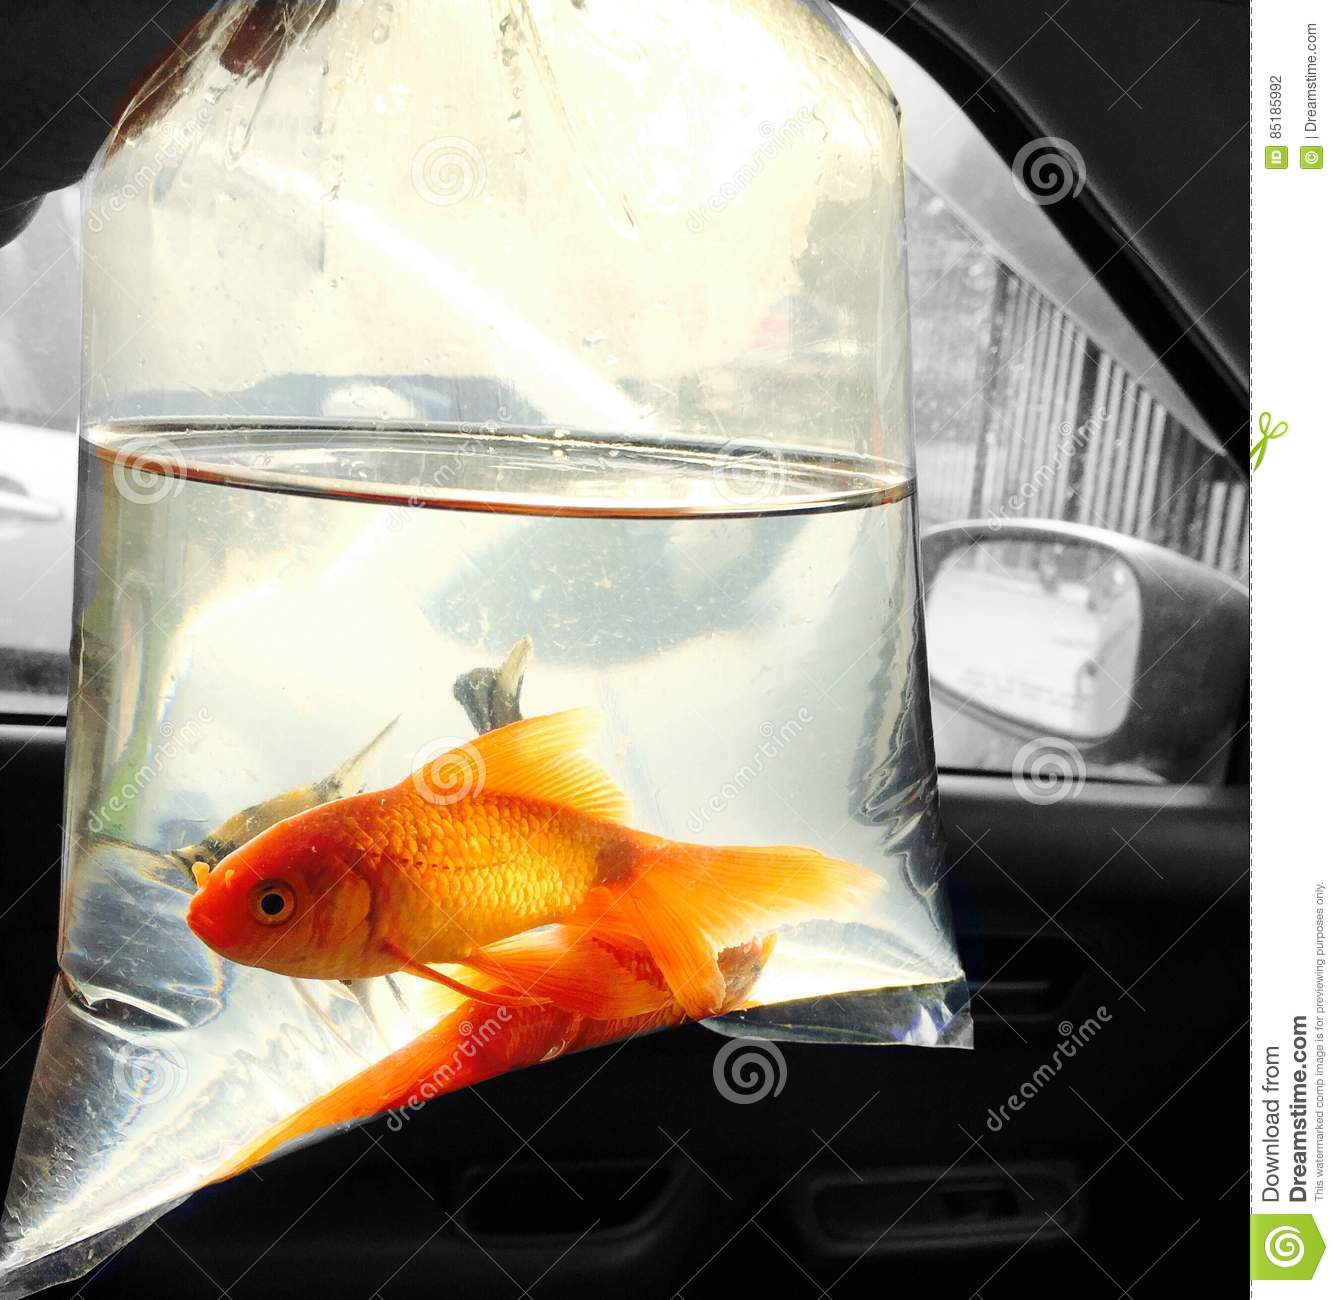 Gold fish in plastic bag stock photo image 85185992 for Fish in a bag